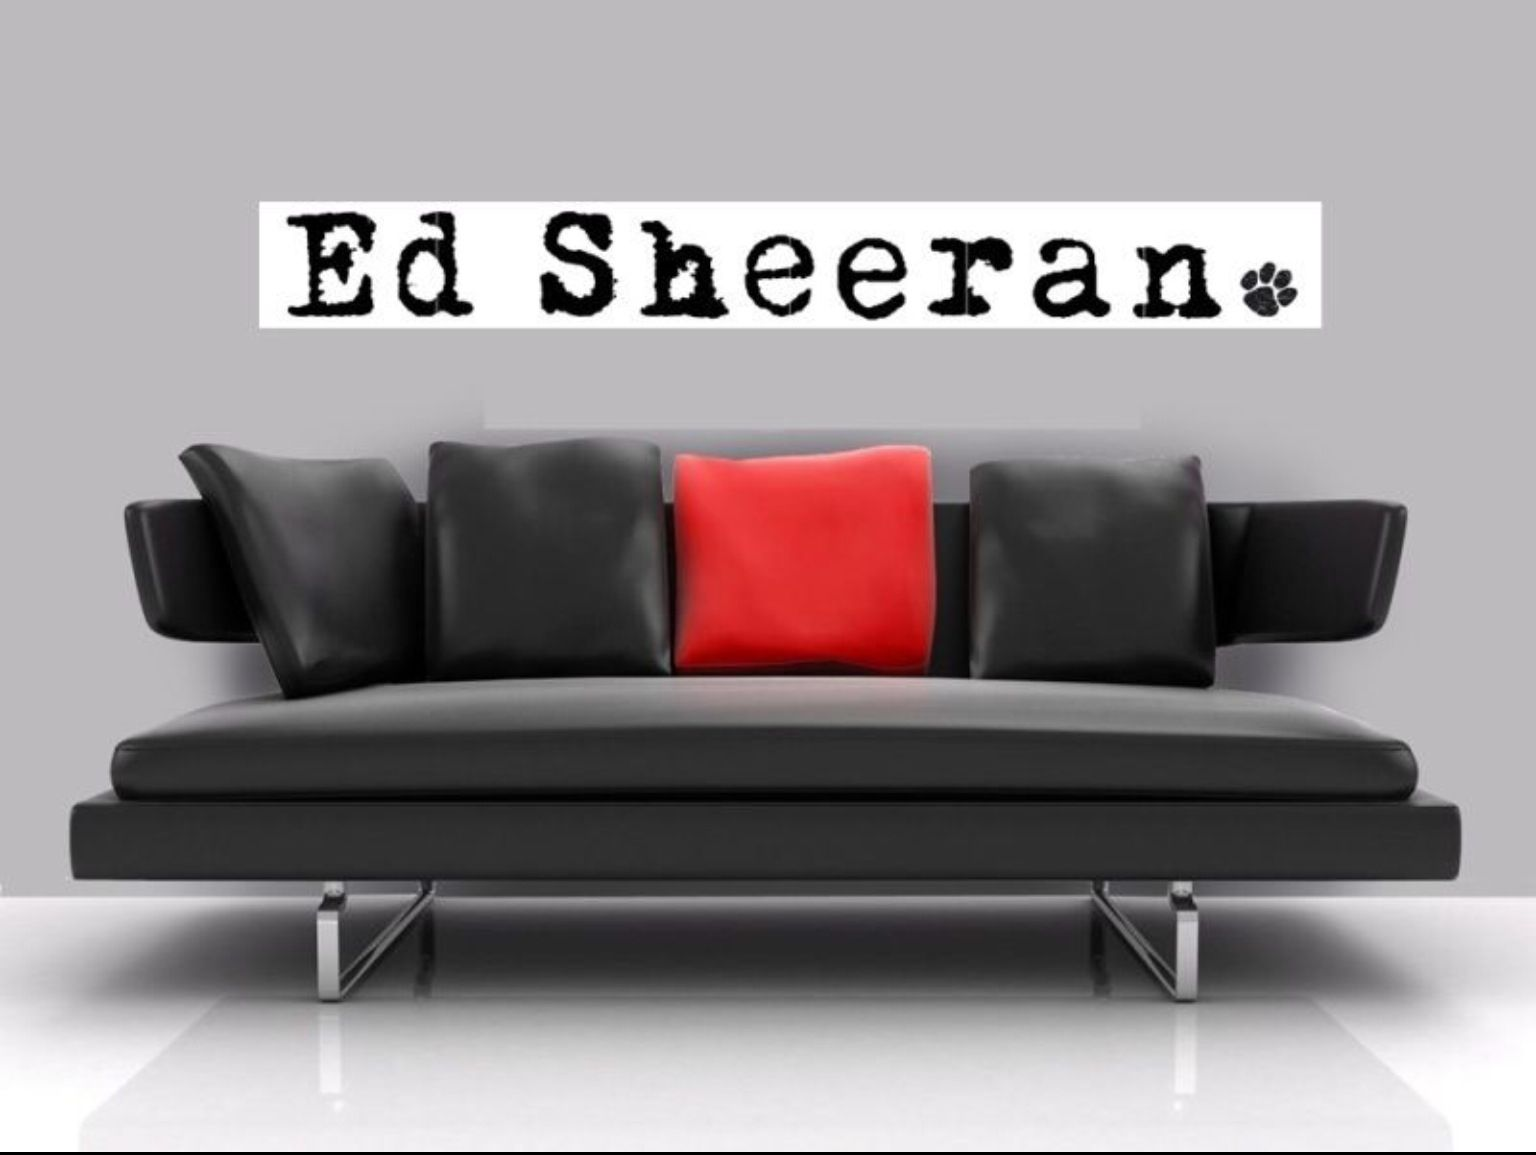 Sofa Lyrics By Ed Sheeran Ed Sheeran Wall Art Ideas For My New Bedroom Ed Sheeran Style